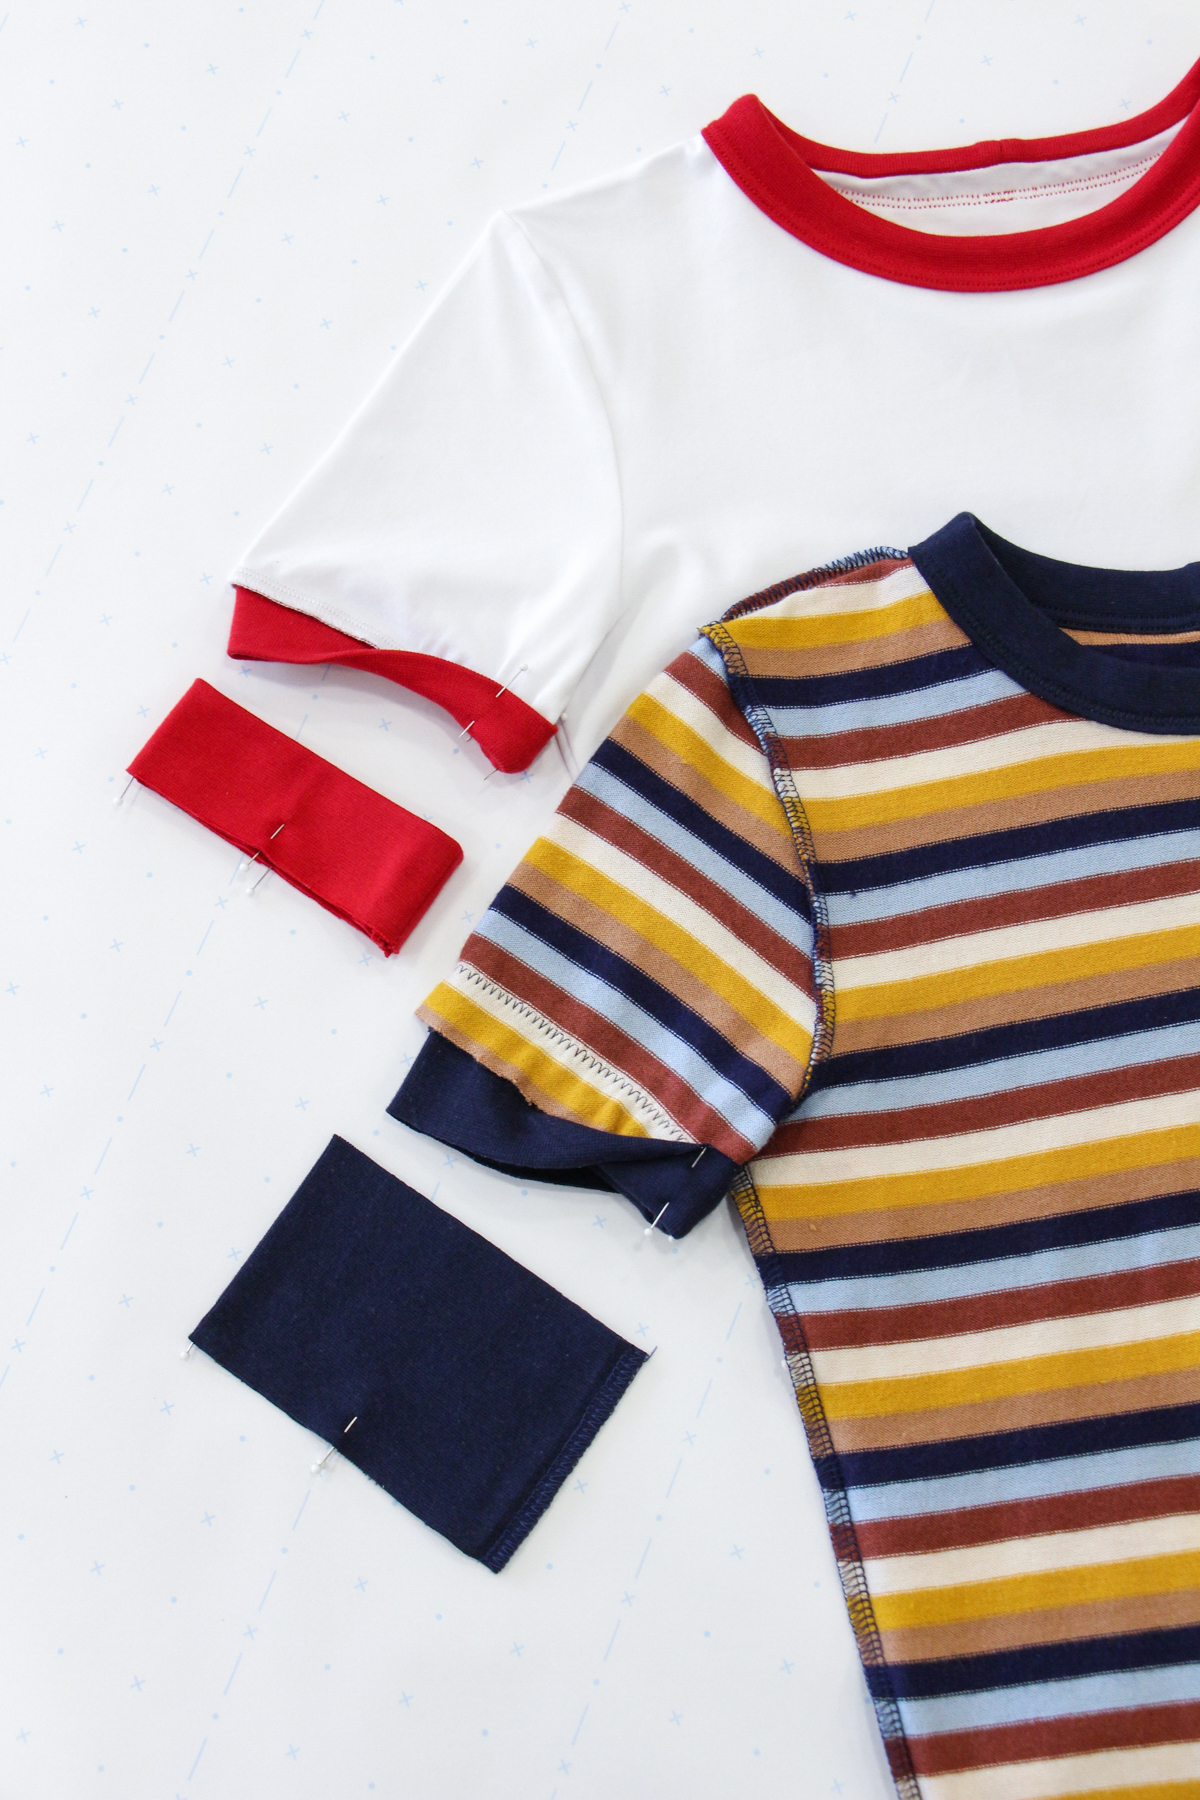 How To Make A Rowan Ringer Tee - Method 2 & 3 - Sleeve Binds